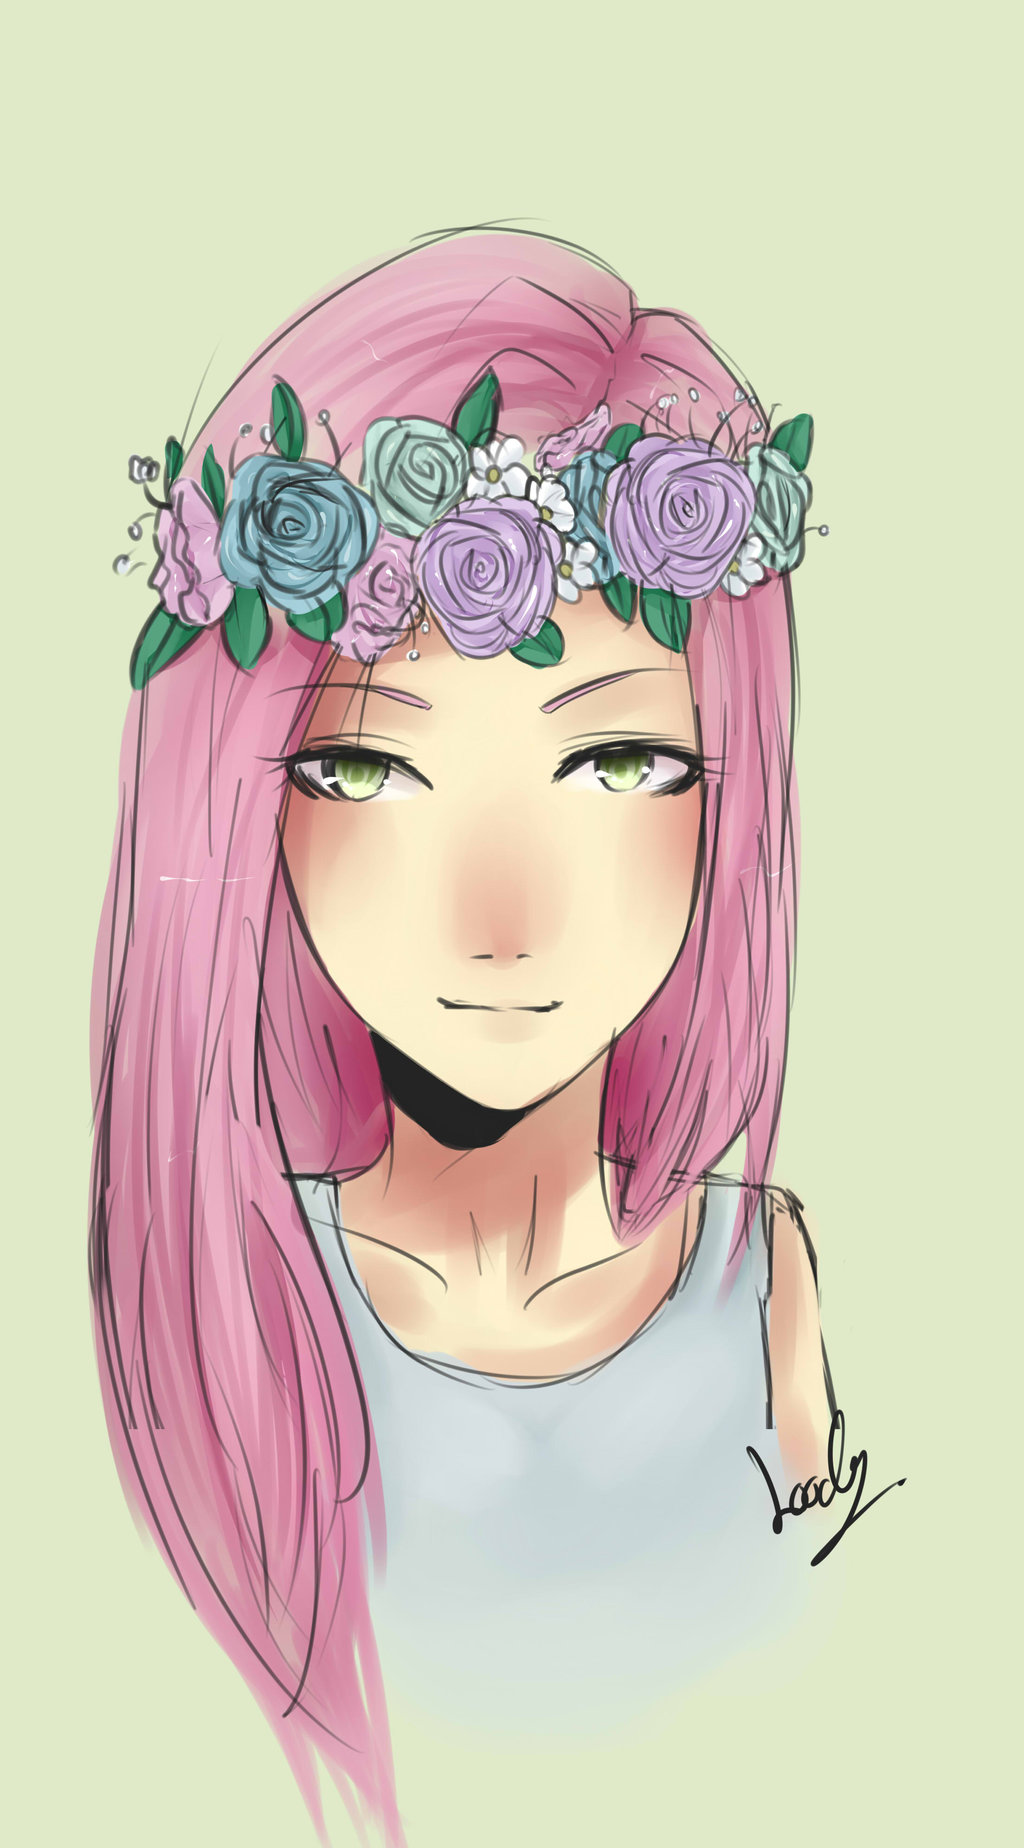 Image related girl flower crown drawing flower drawing tumblr related girl flower crown drawing flower drawing tumblr flower 164305g izmirmasajfo